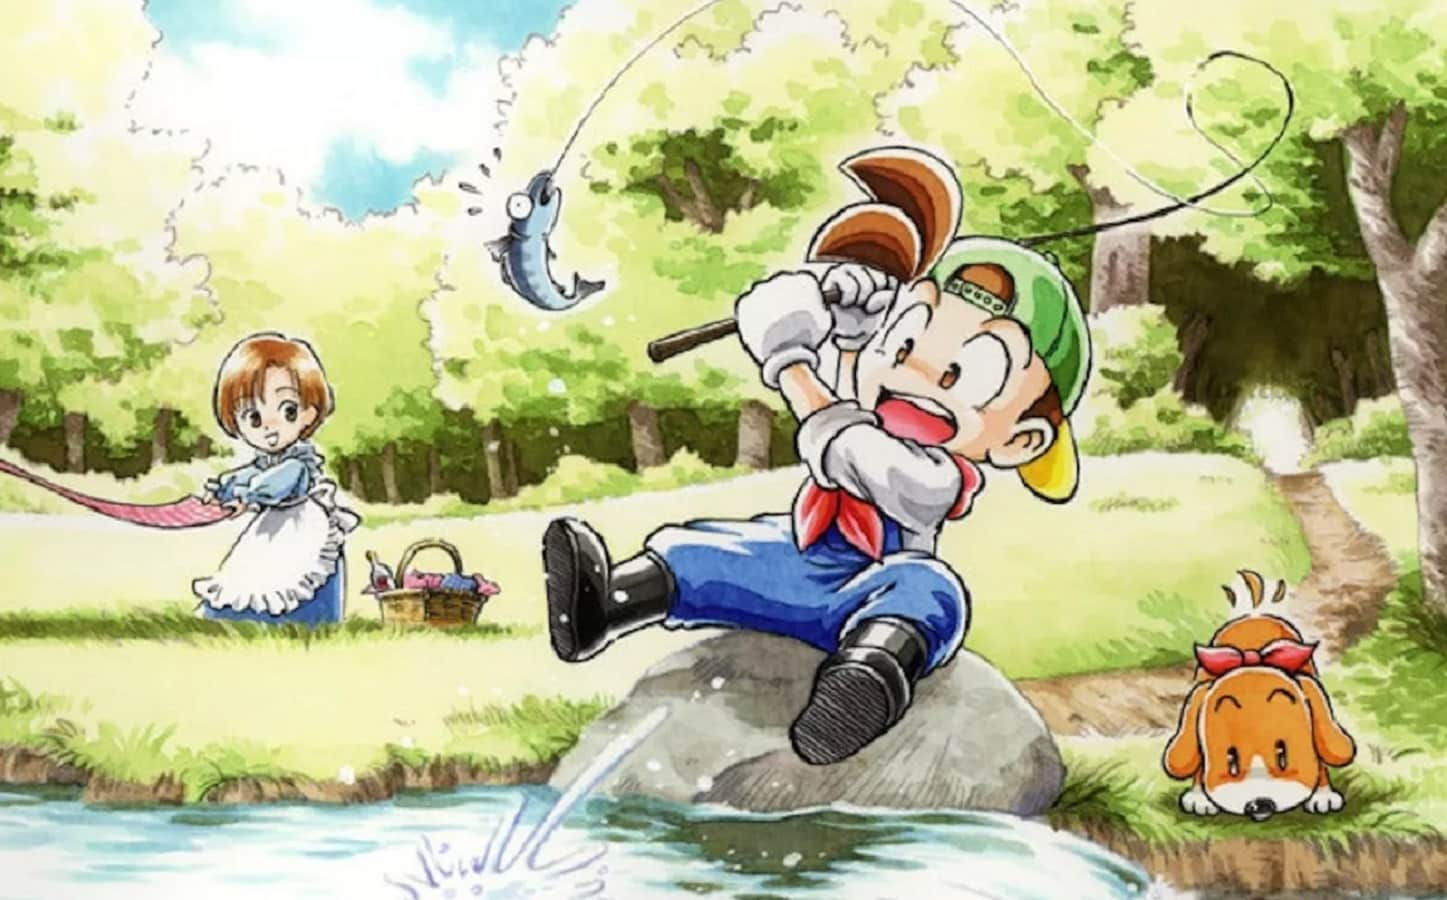 Give me an MMO farming game like Harvest Moon and I'll be